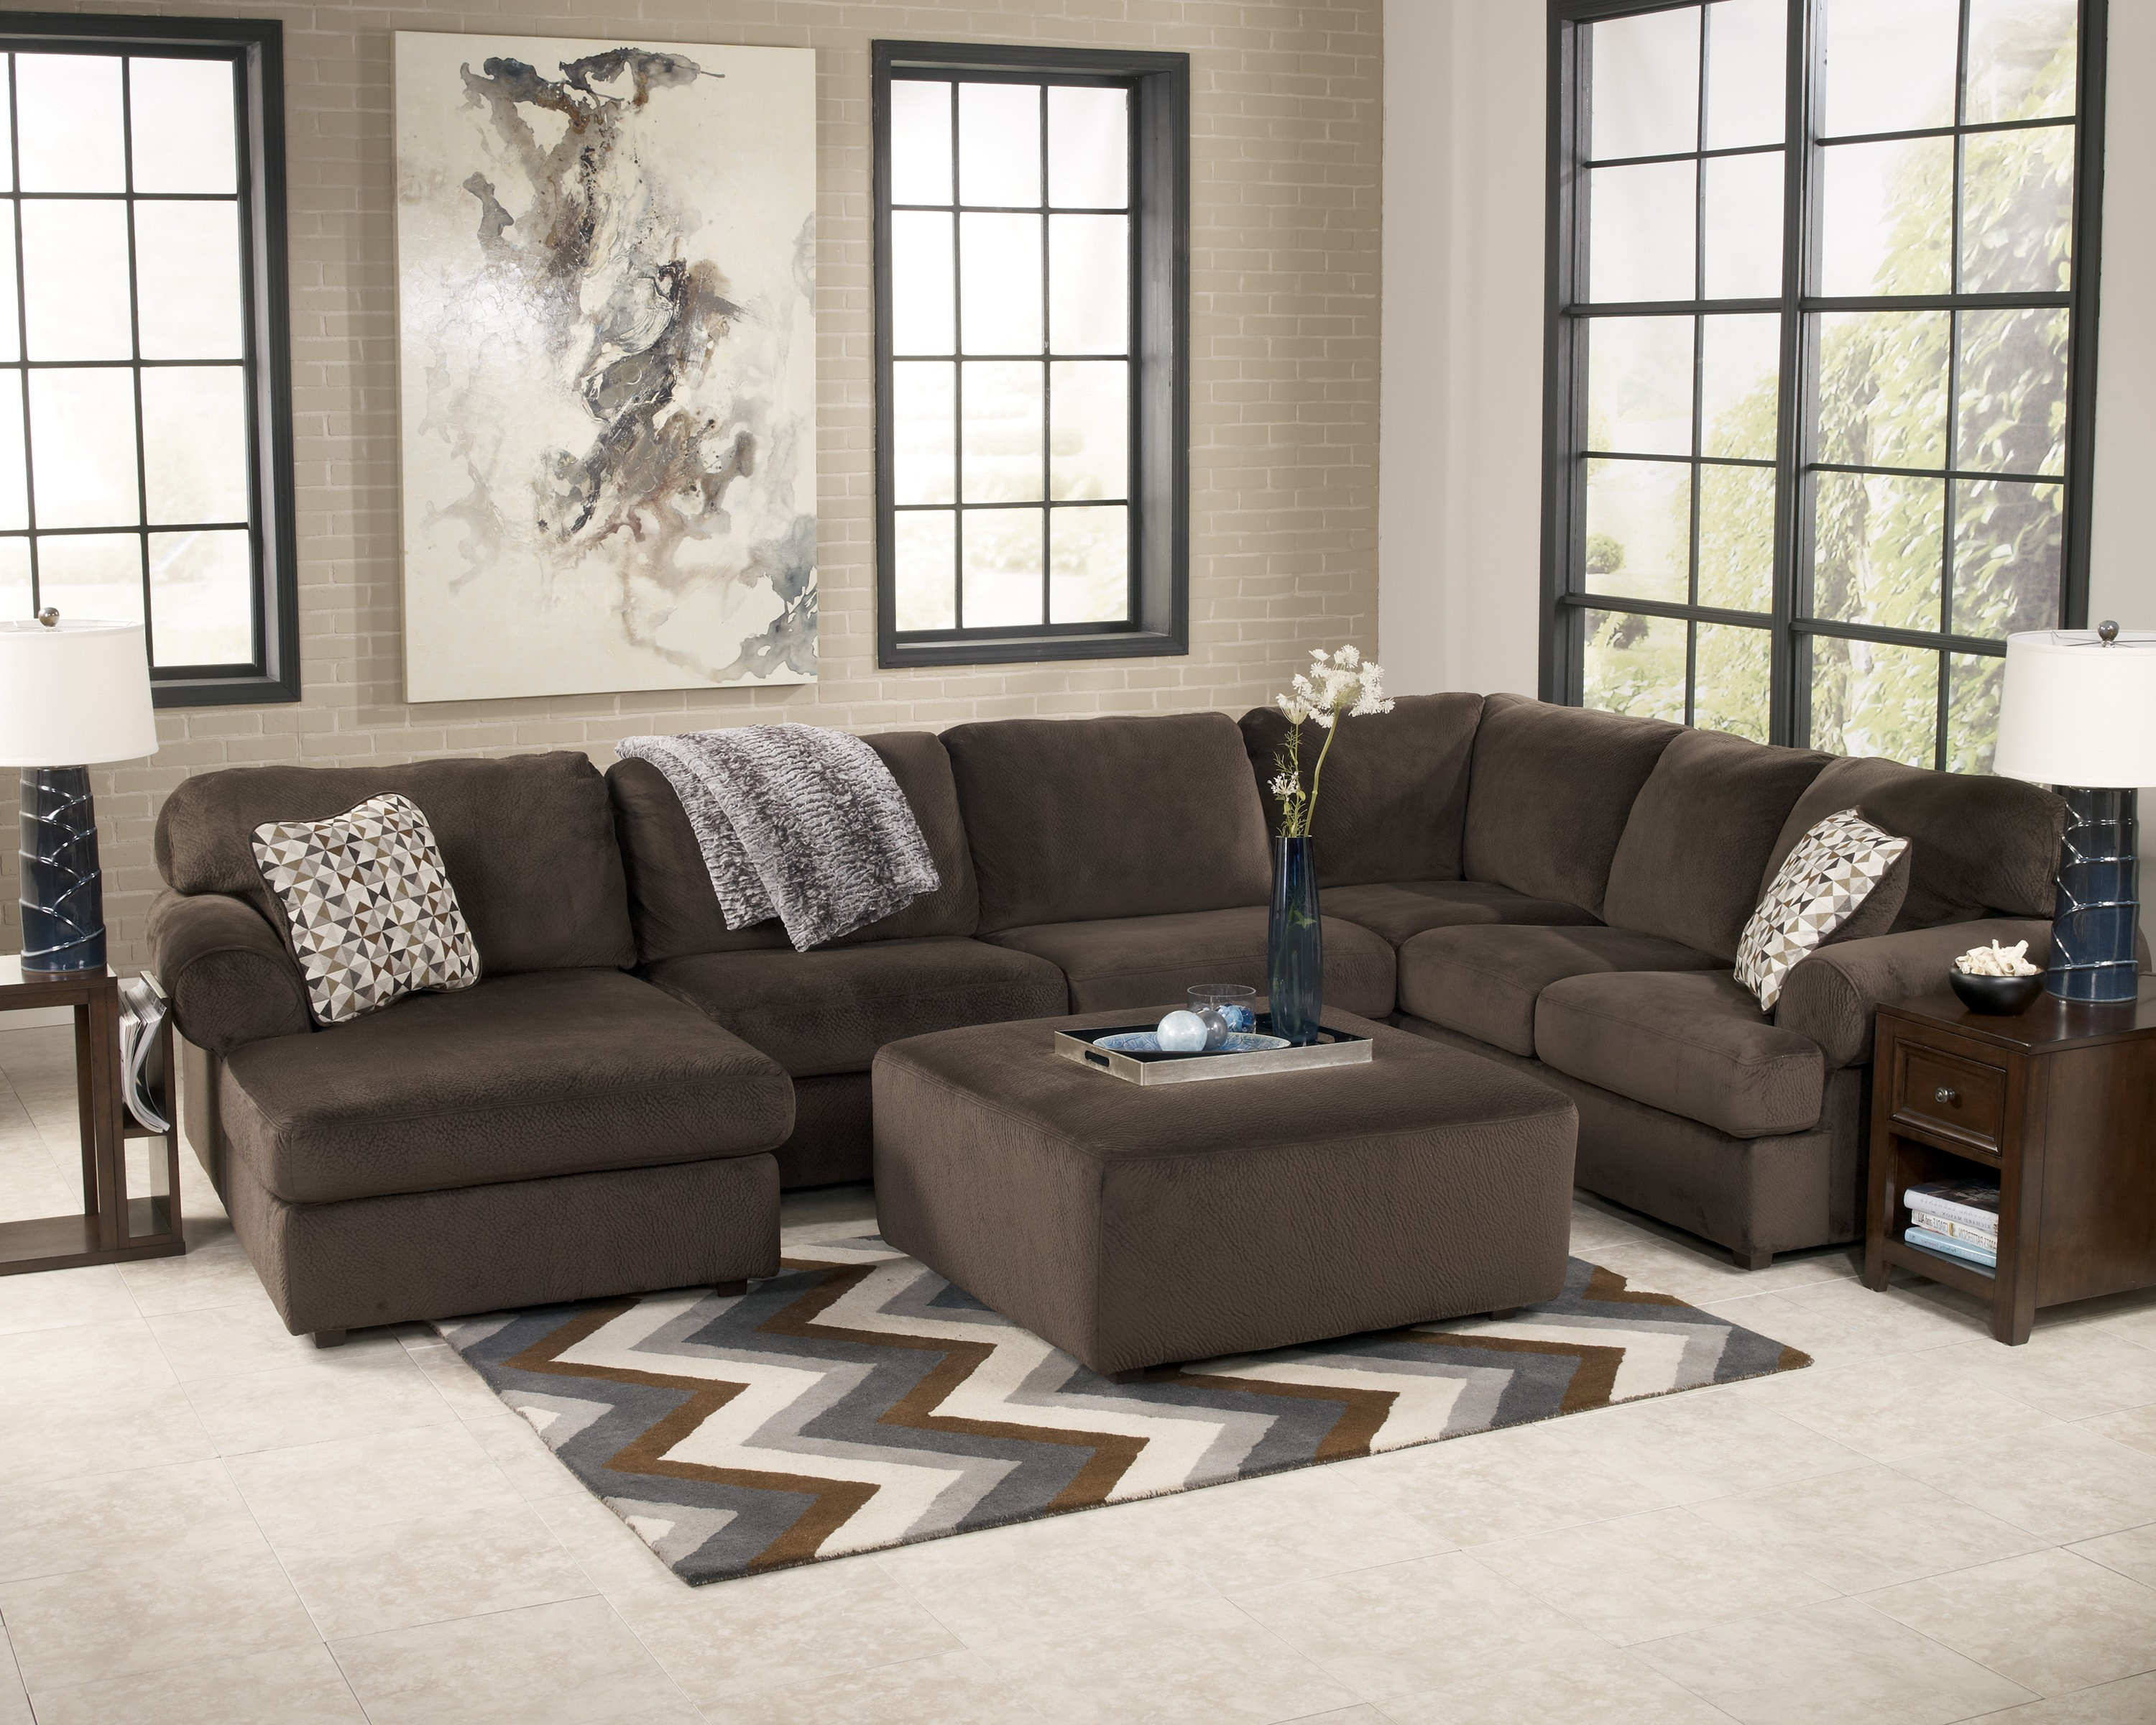 Buy Jessa Place - Chocolate Living Room Set by Signature Design from  www.Traveller Location.